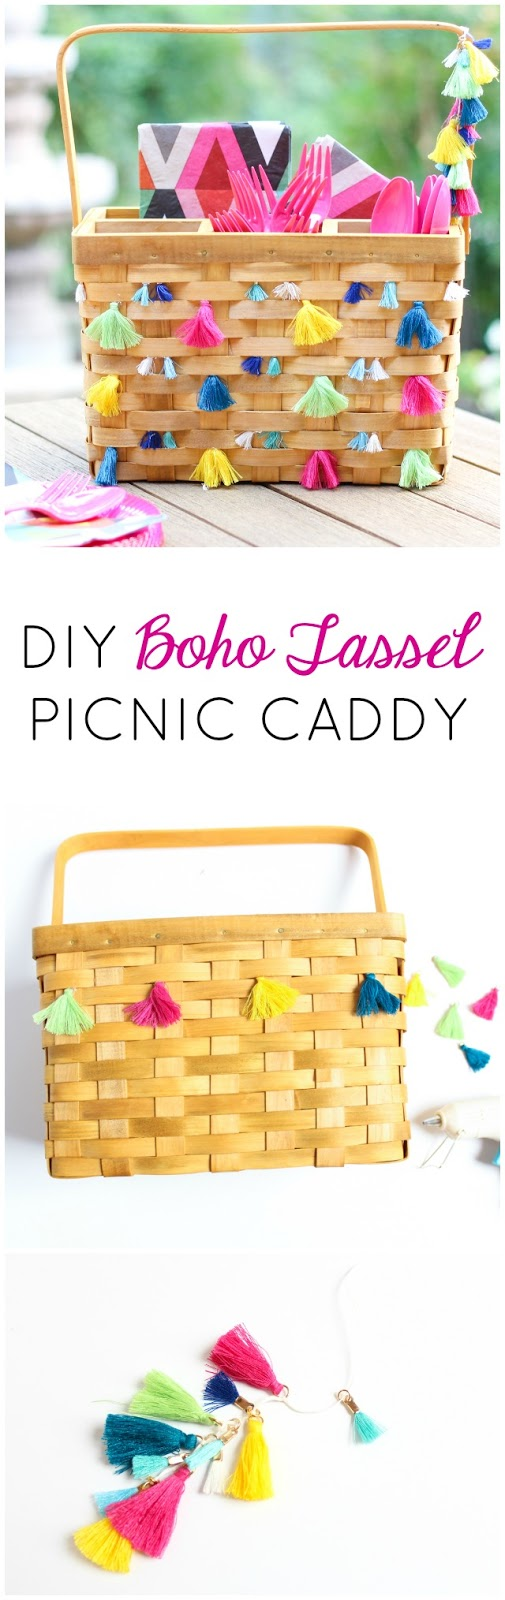 Tassel Decorated Picnic Caddy | Utensils, Picnics and Tassels